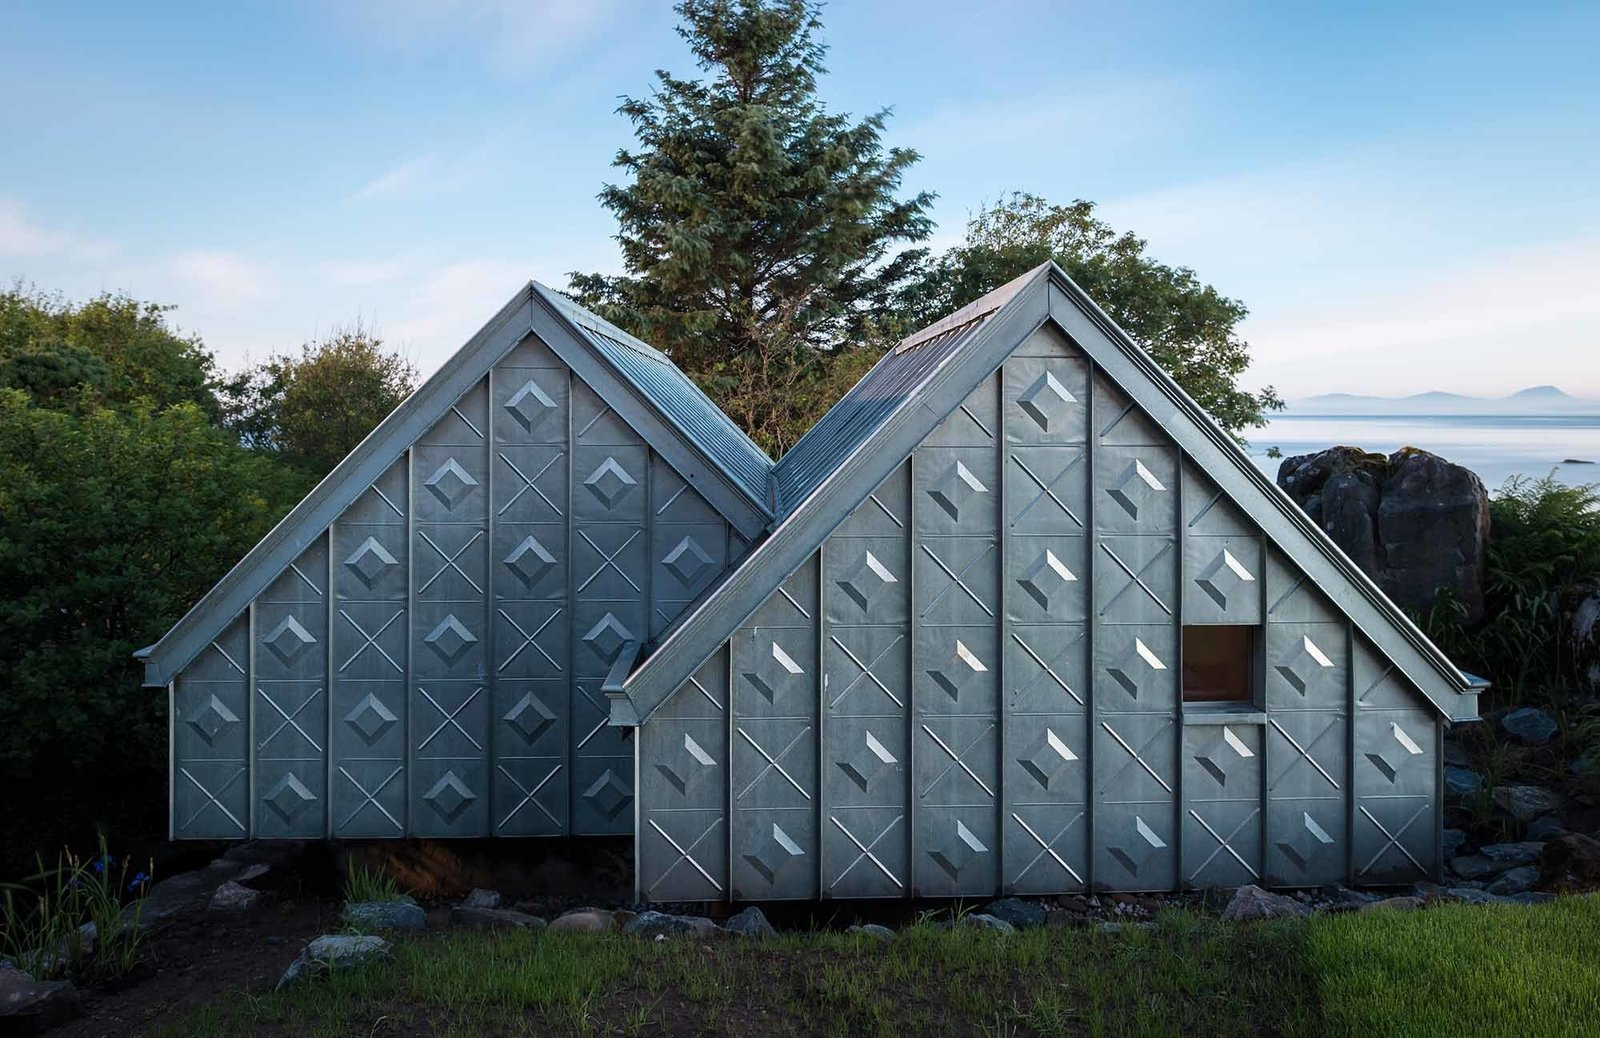 "The studio is located in the natural context of the Scottish coast, with the island of Jura in the distance. A significant design challenge, according to Blake, was ""building something quite refined in an extreme and remote environment."" To overcome this logistical obstacle, much of the material was prefabricated offsite and transported to the building location. At the facade, elemental zinc is elevated from raw material to art piece by the unique cladding pattern. The custom embossed standing seam zinc system was designed in collaboration with VM Zinc, and fitted by HLMetals. Tagged: Exterior, Metal Roof Material, House, and Metal Siding Material.  Midden Studio by Sarah Akkoush"